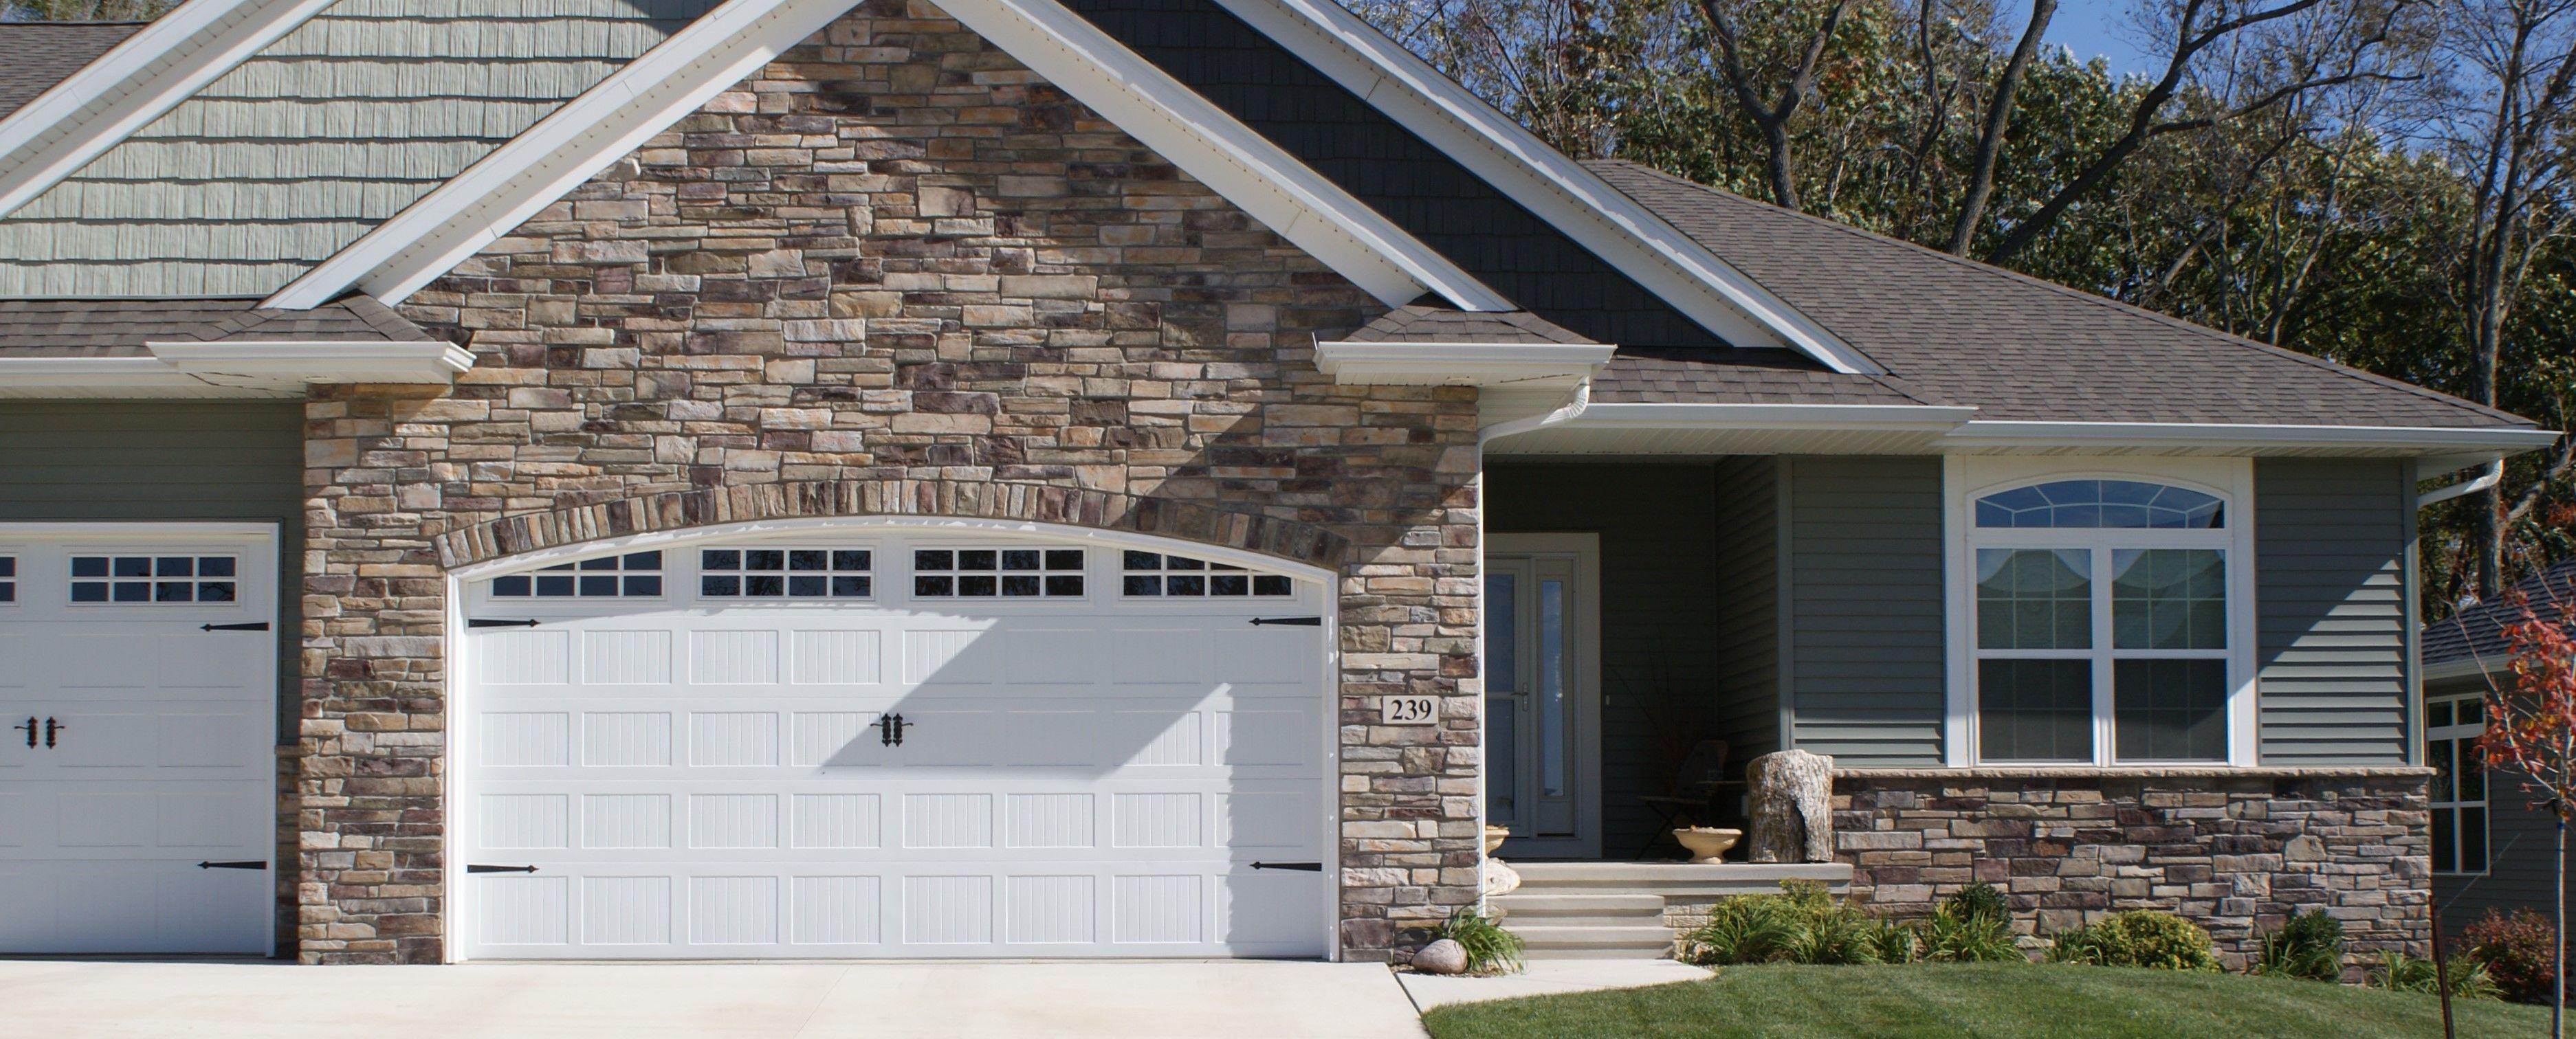 Boral bucks county country ledgestone country ledgestone for Exterior ledgestone